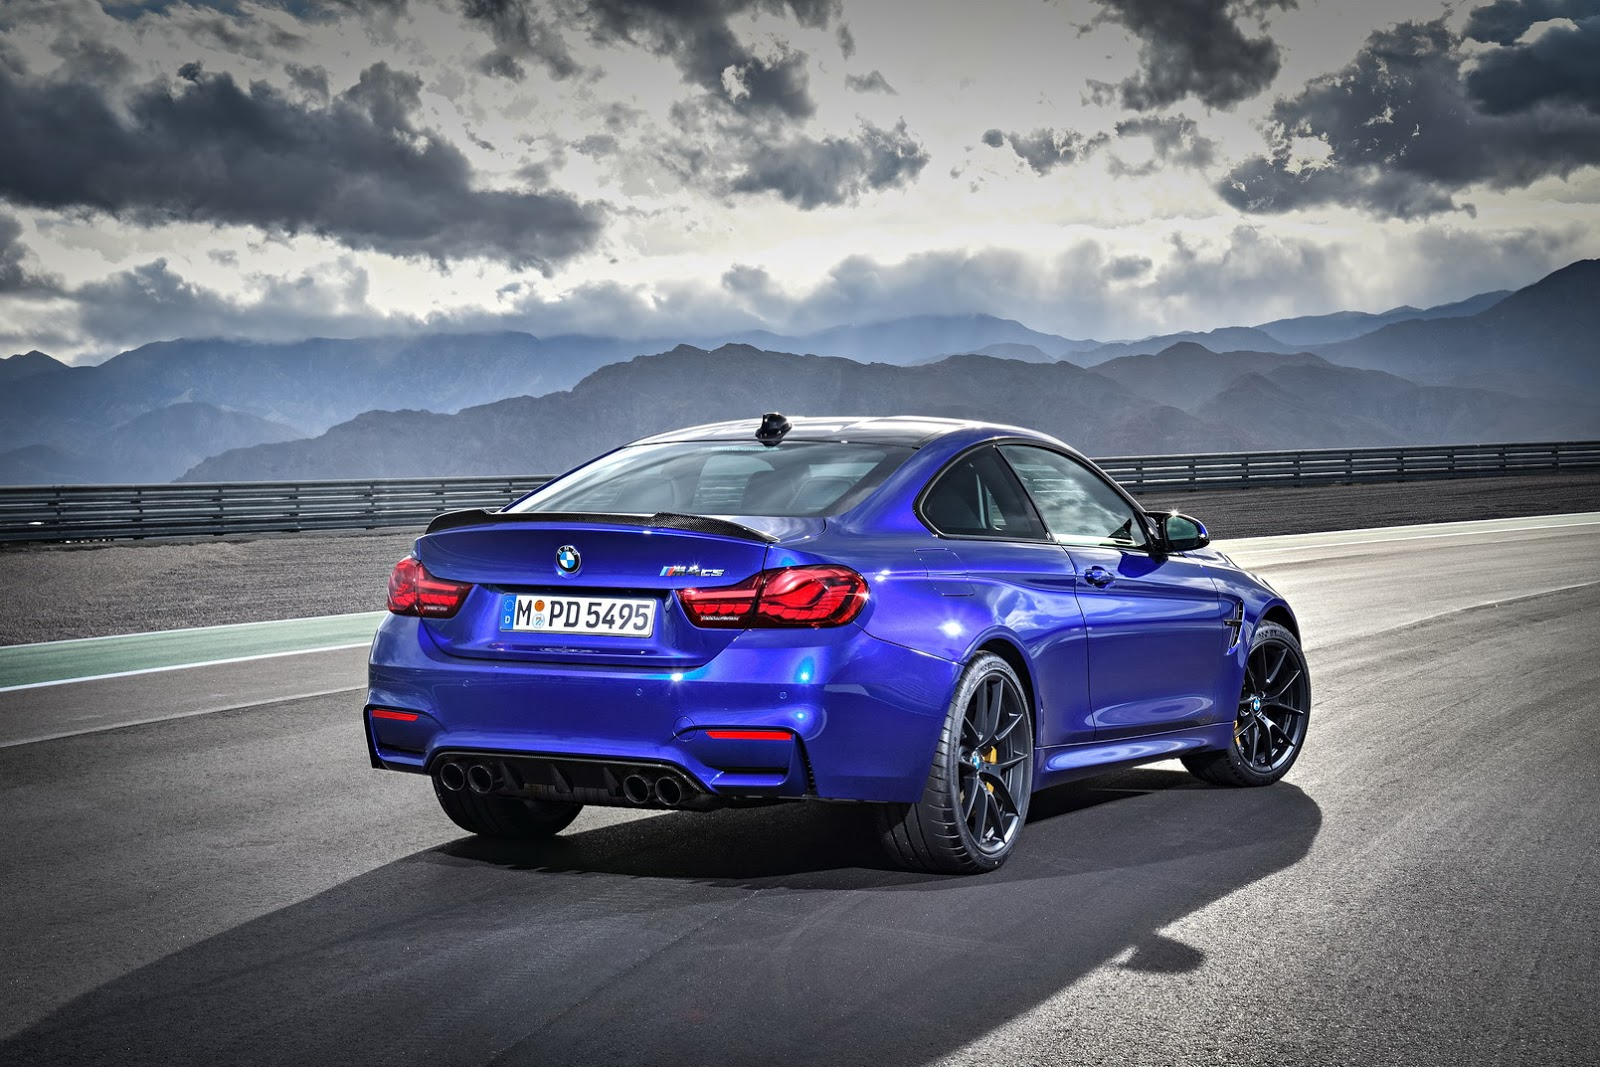 454hp bmw m4 cs slots below the mighty gts carscoops. Black Bedroom Furniture Sets. Home Design Ideas